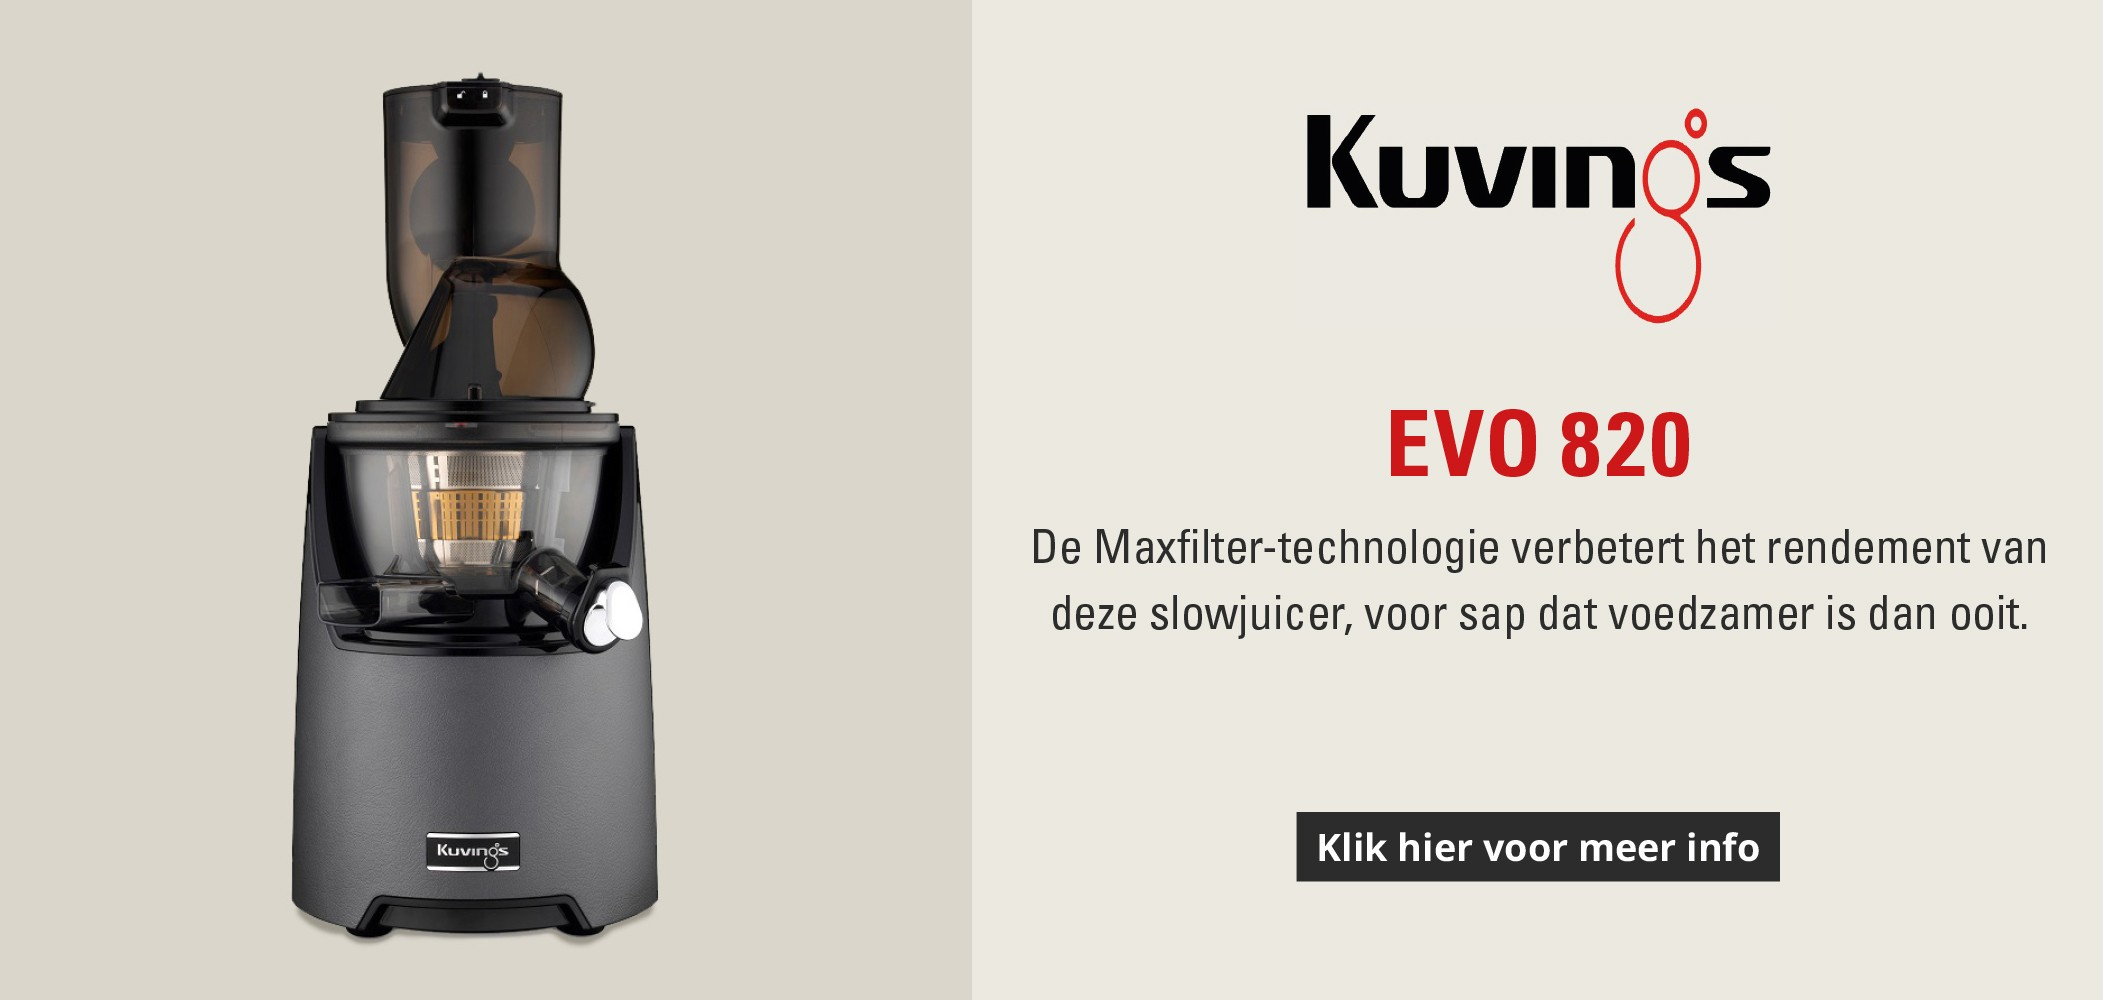 Slowjuicer Evo820 Kuvings